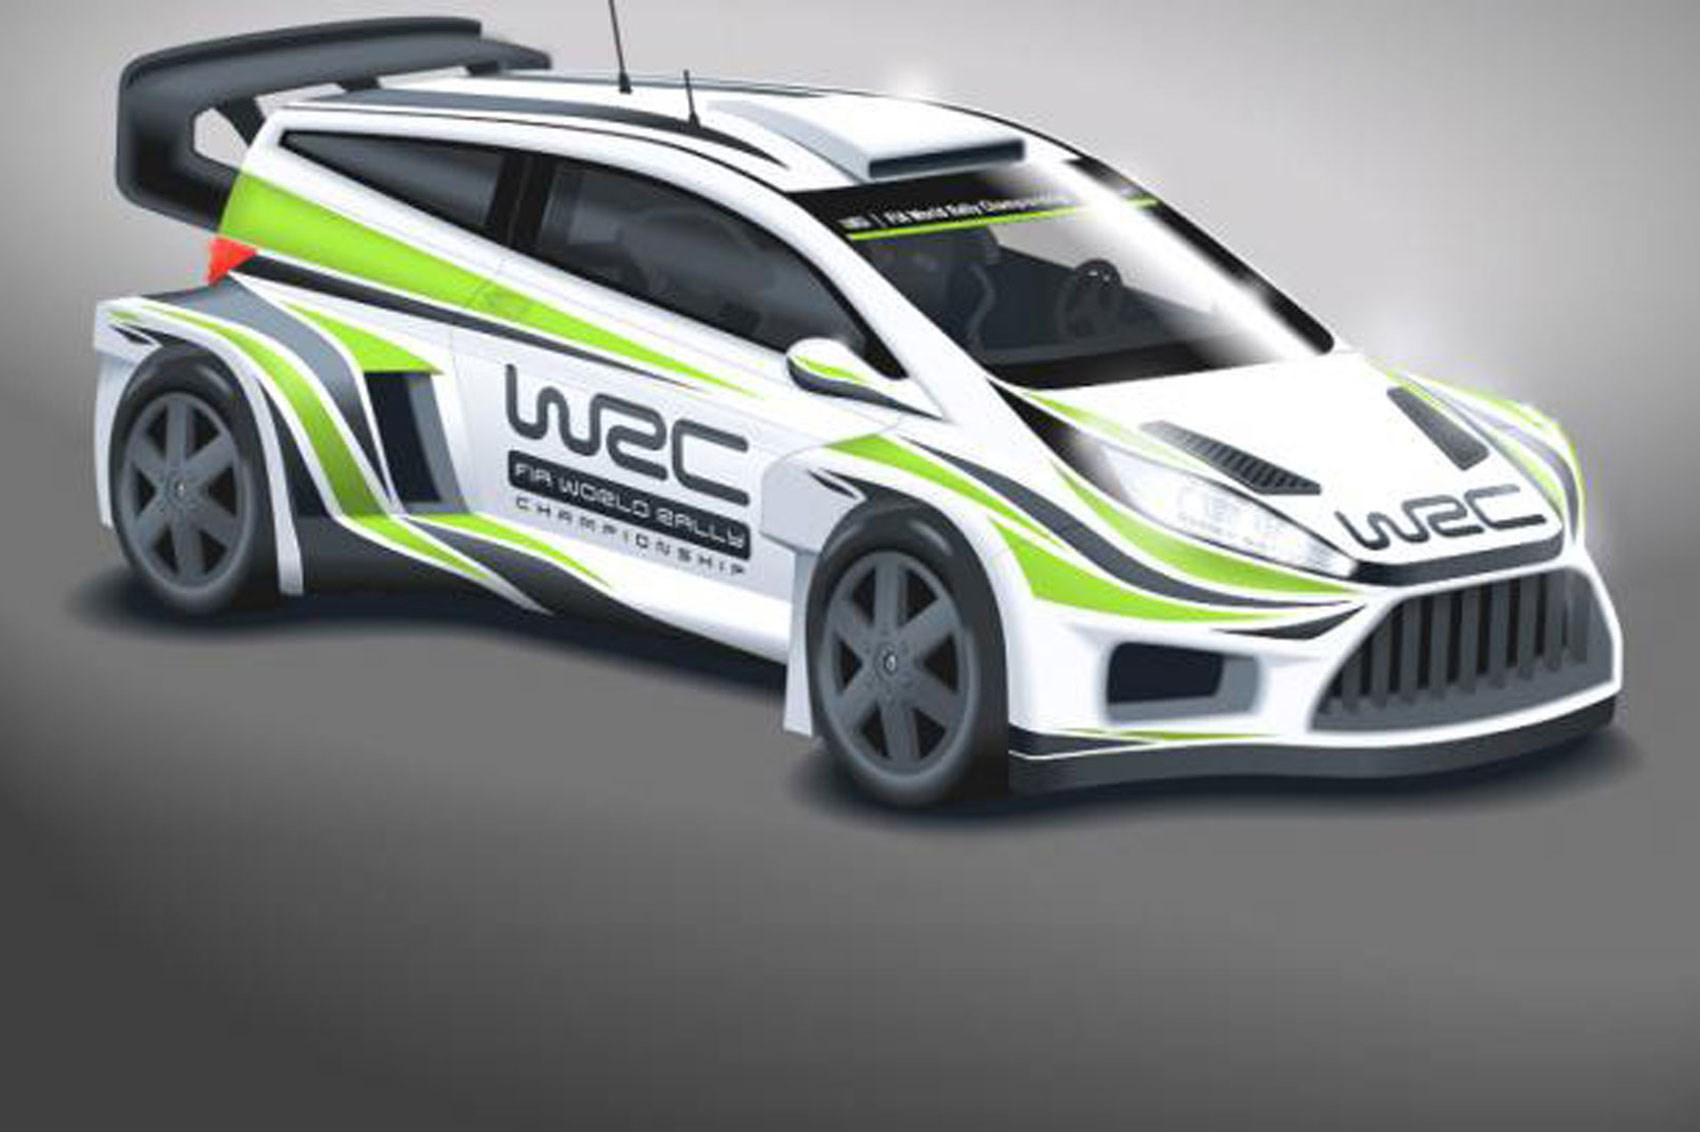 Ultrablogus  Terrific Wild New Look For Wrc Cars In  By Car Magazine With Extraordinary Wrc Cars Will Get Wider Bodies Bigger Wings And More Power For  With Divine  Honda Civic Ex Interior Also  Lincoln Navigator Interior In Addition  Maxima Interior And  Camaro Interior As Well As  Toyota Prius Interior Additionally  Dodge Ram  Interior From Carmagazinecouk With Ultrablogus  Extraordinary Wild New Look For Wrc Cars In  By Car Magazine With Divine Wrc Cars Will Get Wider Bodies Bigger Wings And More Power For  And Terrific  Honda Civic Ex Interior Also  Lincoln Navigator Interior In Addition  Maxima Interior From Carmagazinecouk